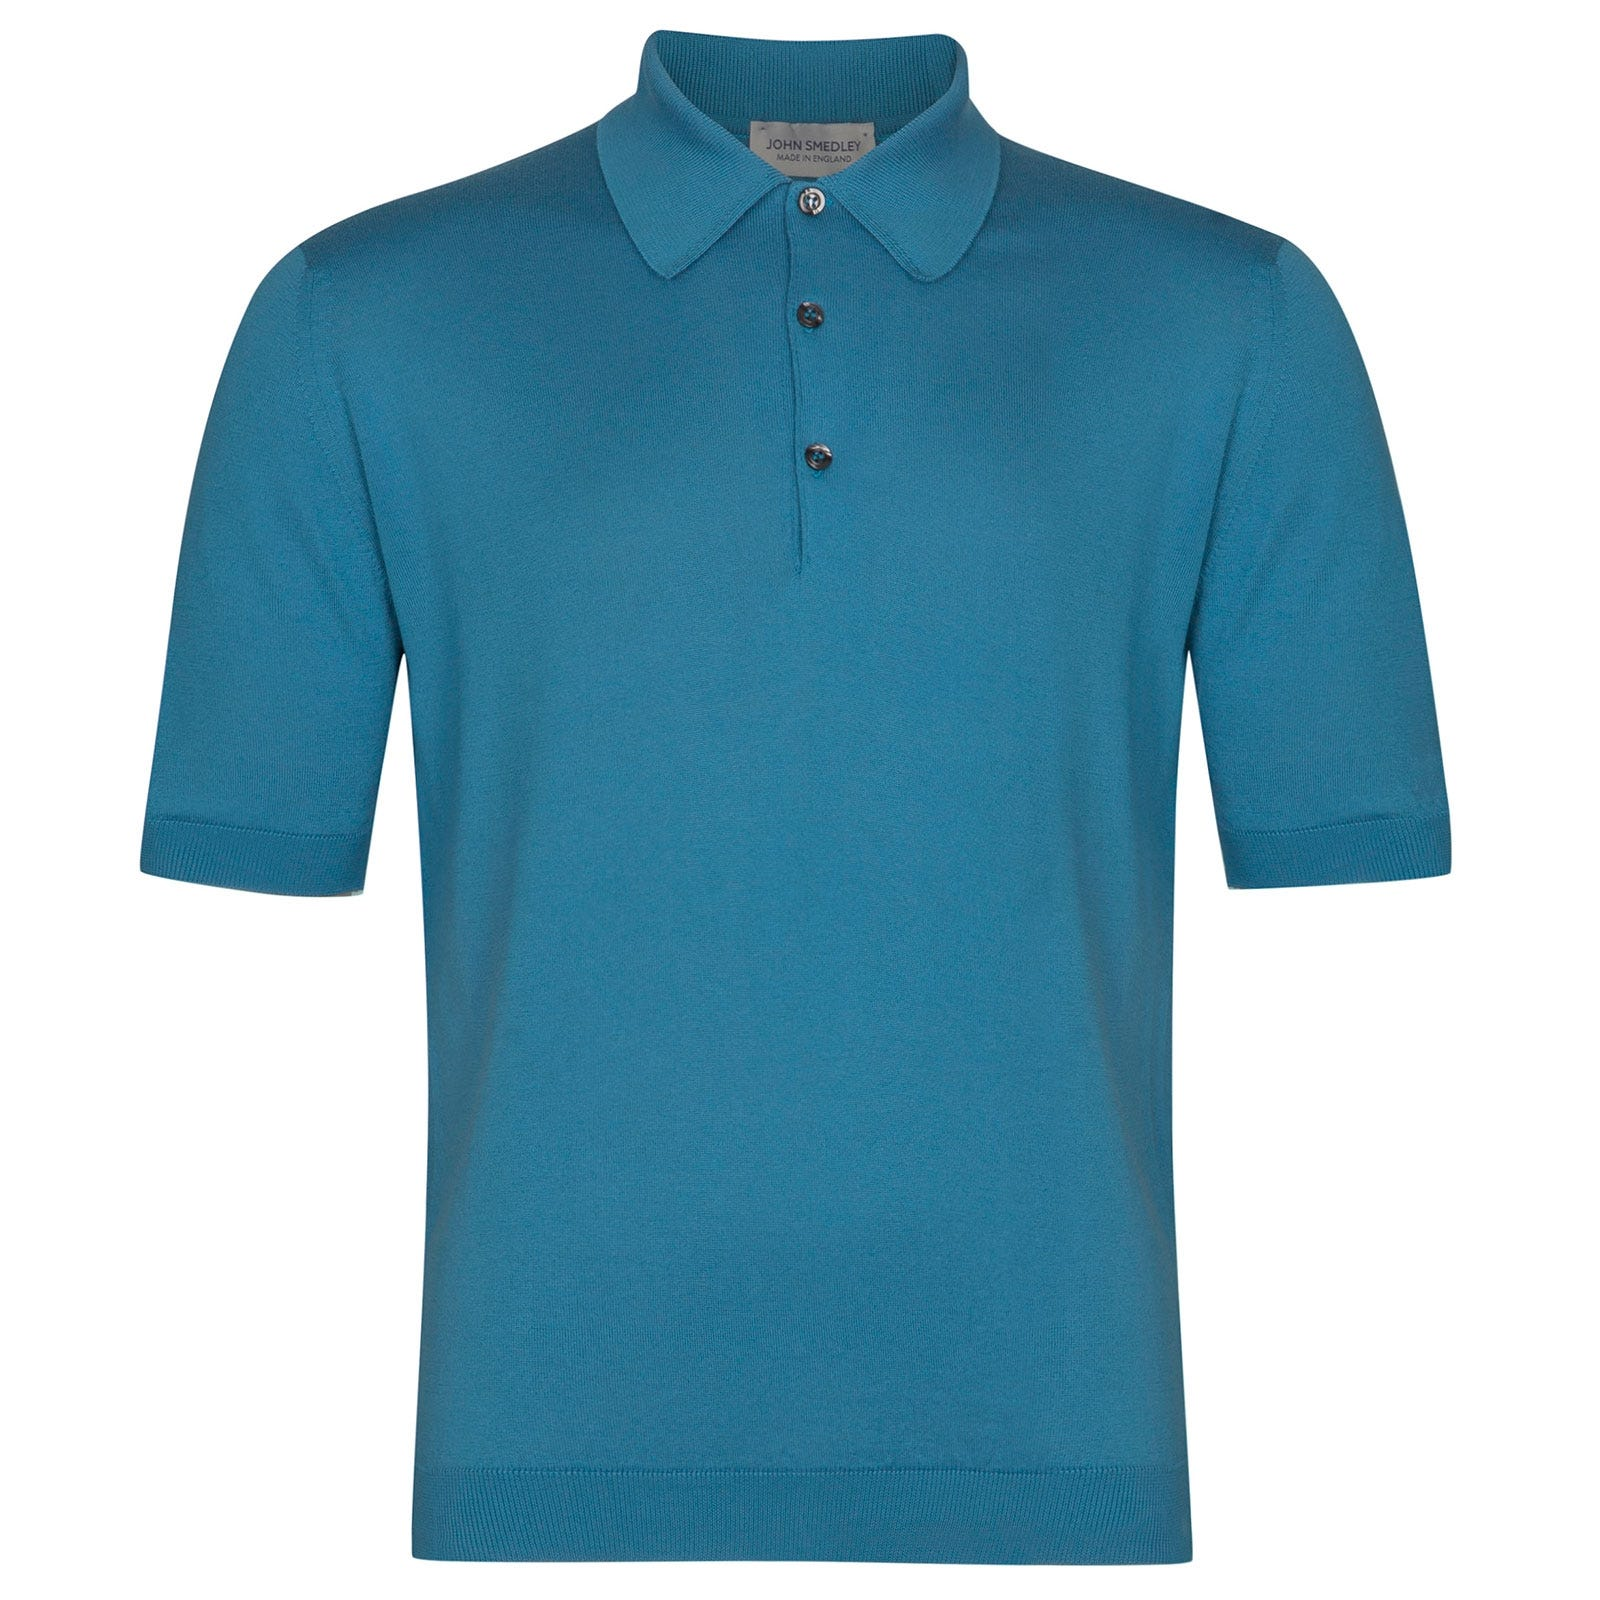 John Smedley Isis Sea Island Cotton Shirt in Ionize Blue-XXL